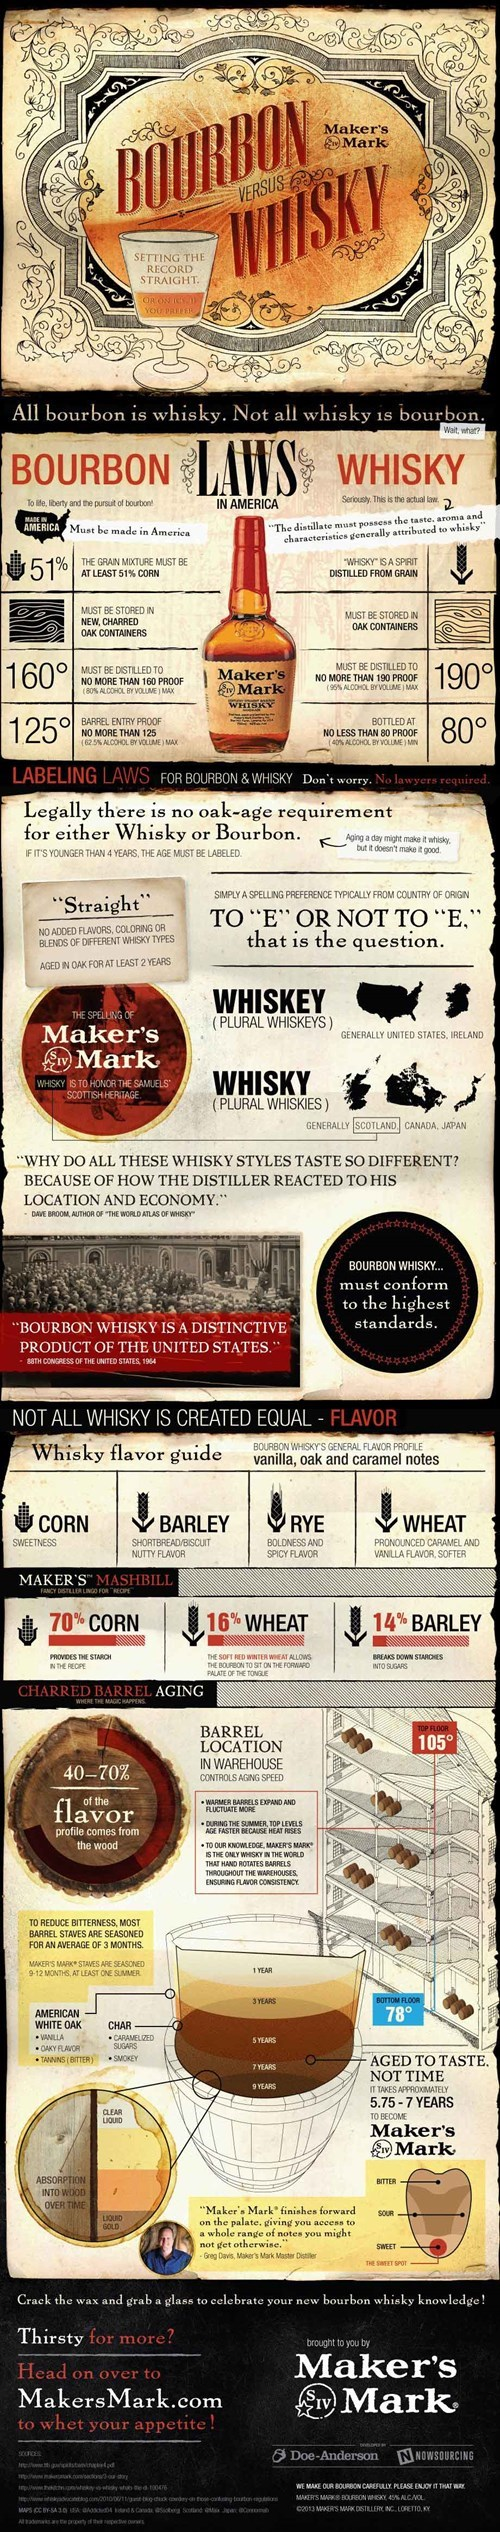 The More You Know: Bourbon Vs Whisky